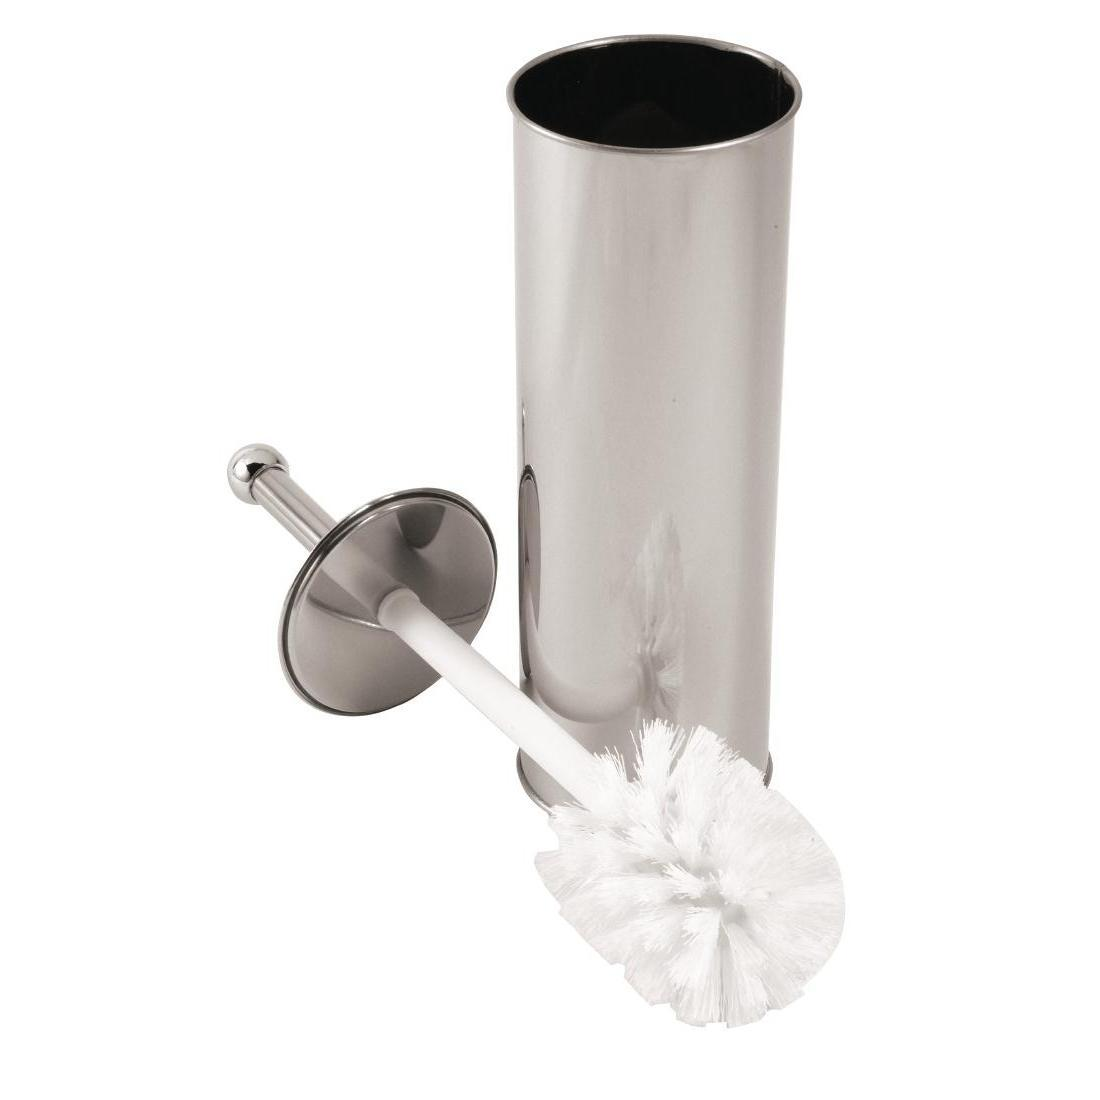 Jantex Toilet Brush and Holder